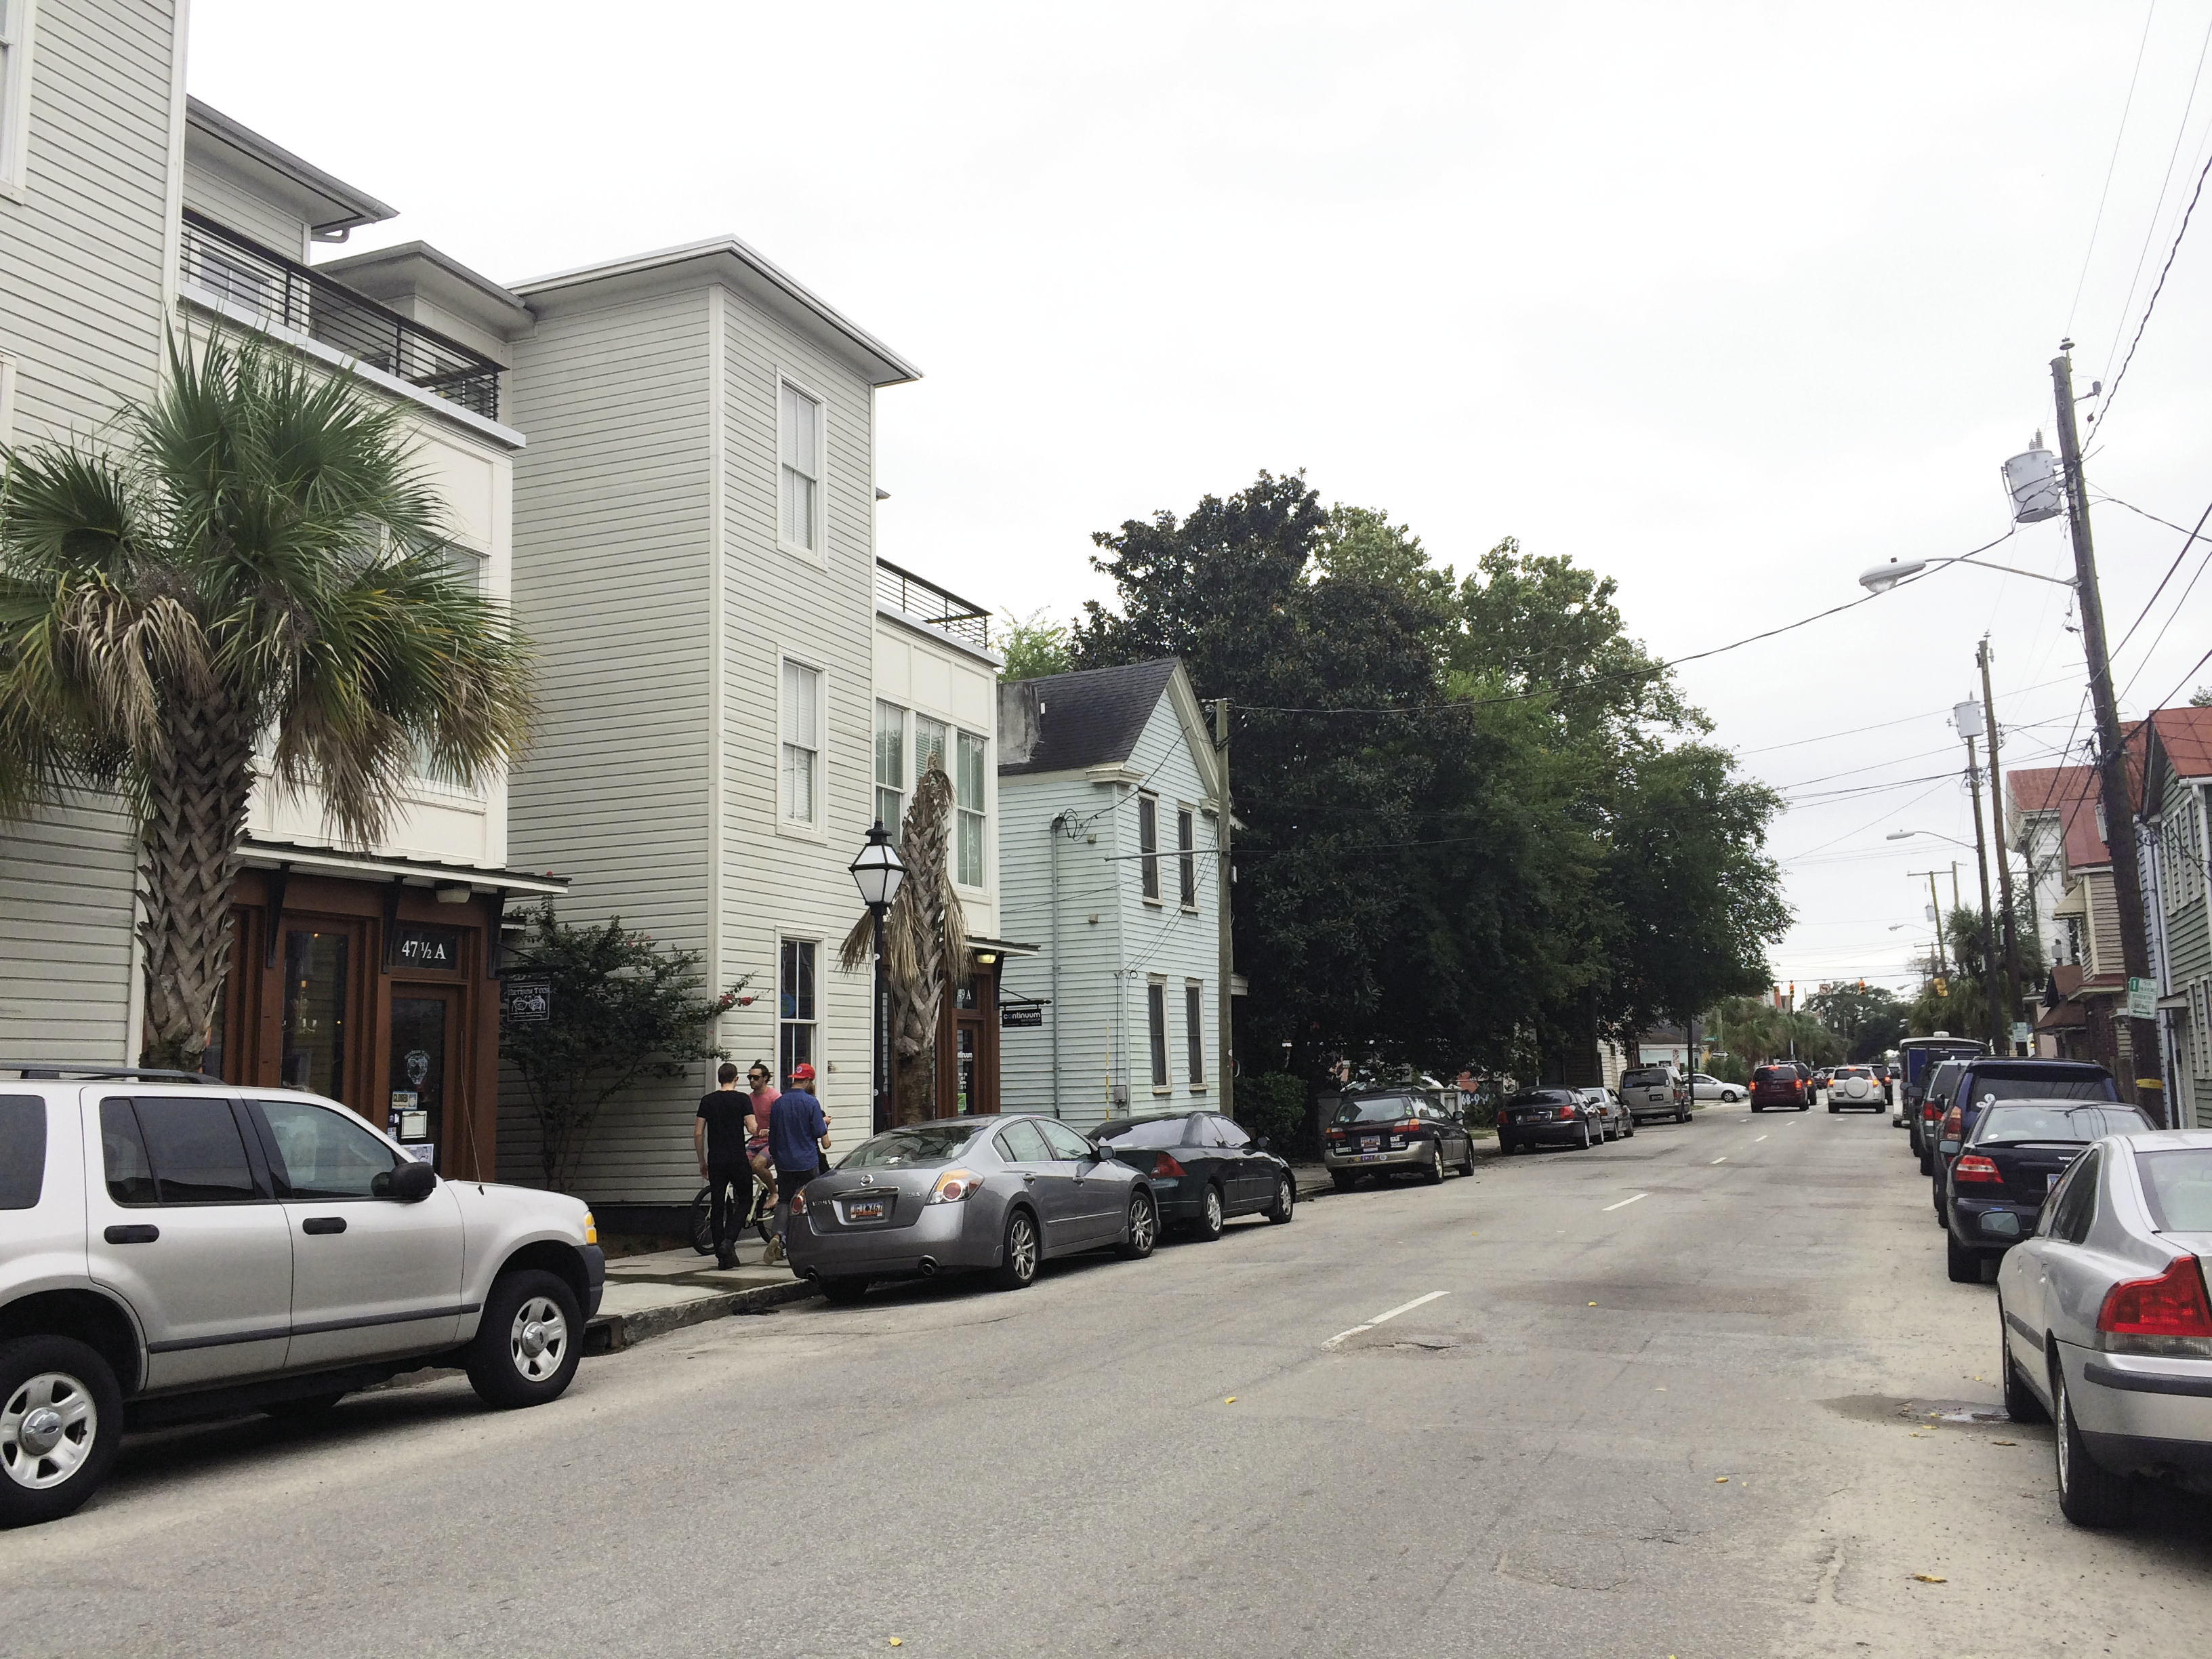 With a growing population on the peninsula, developers are replacing dilapidated housing (as above on Spring Street) with mixed-use buildings, raising gentrification concerns.